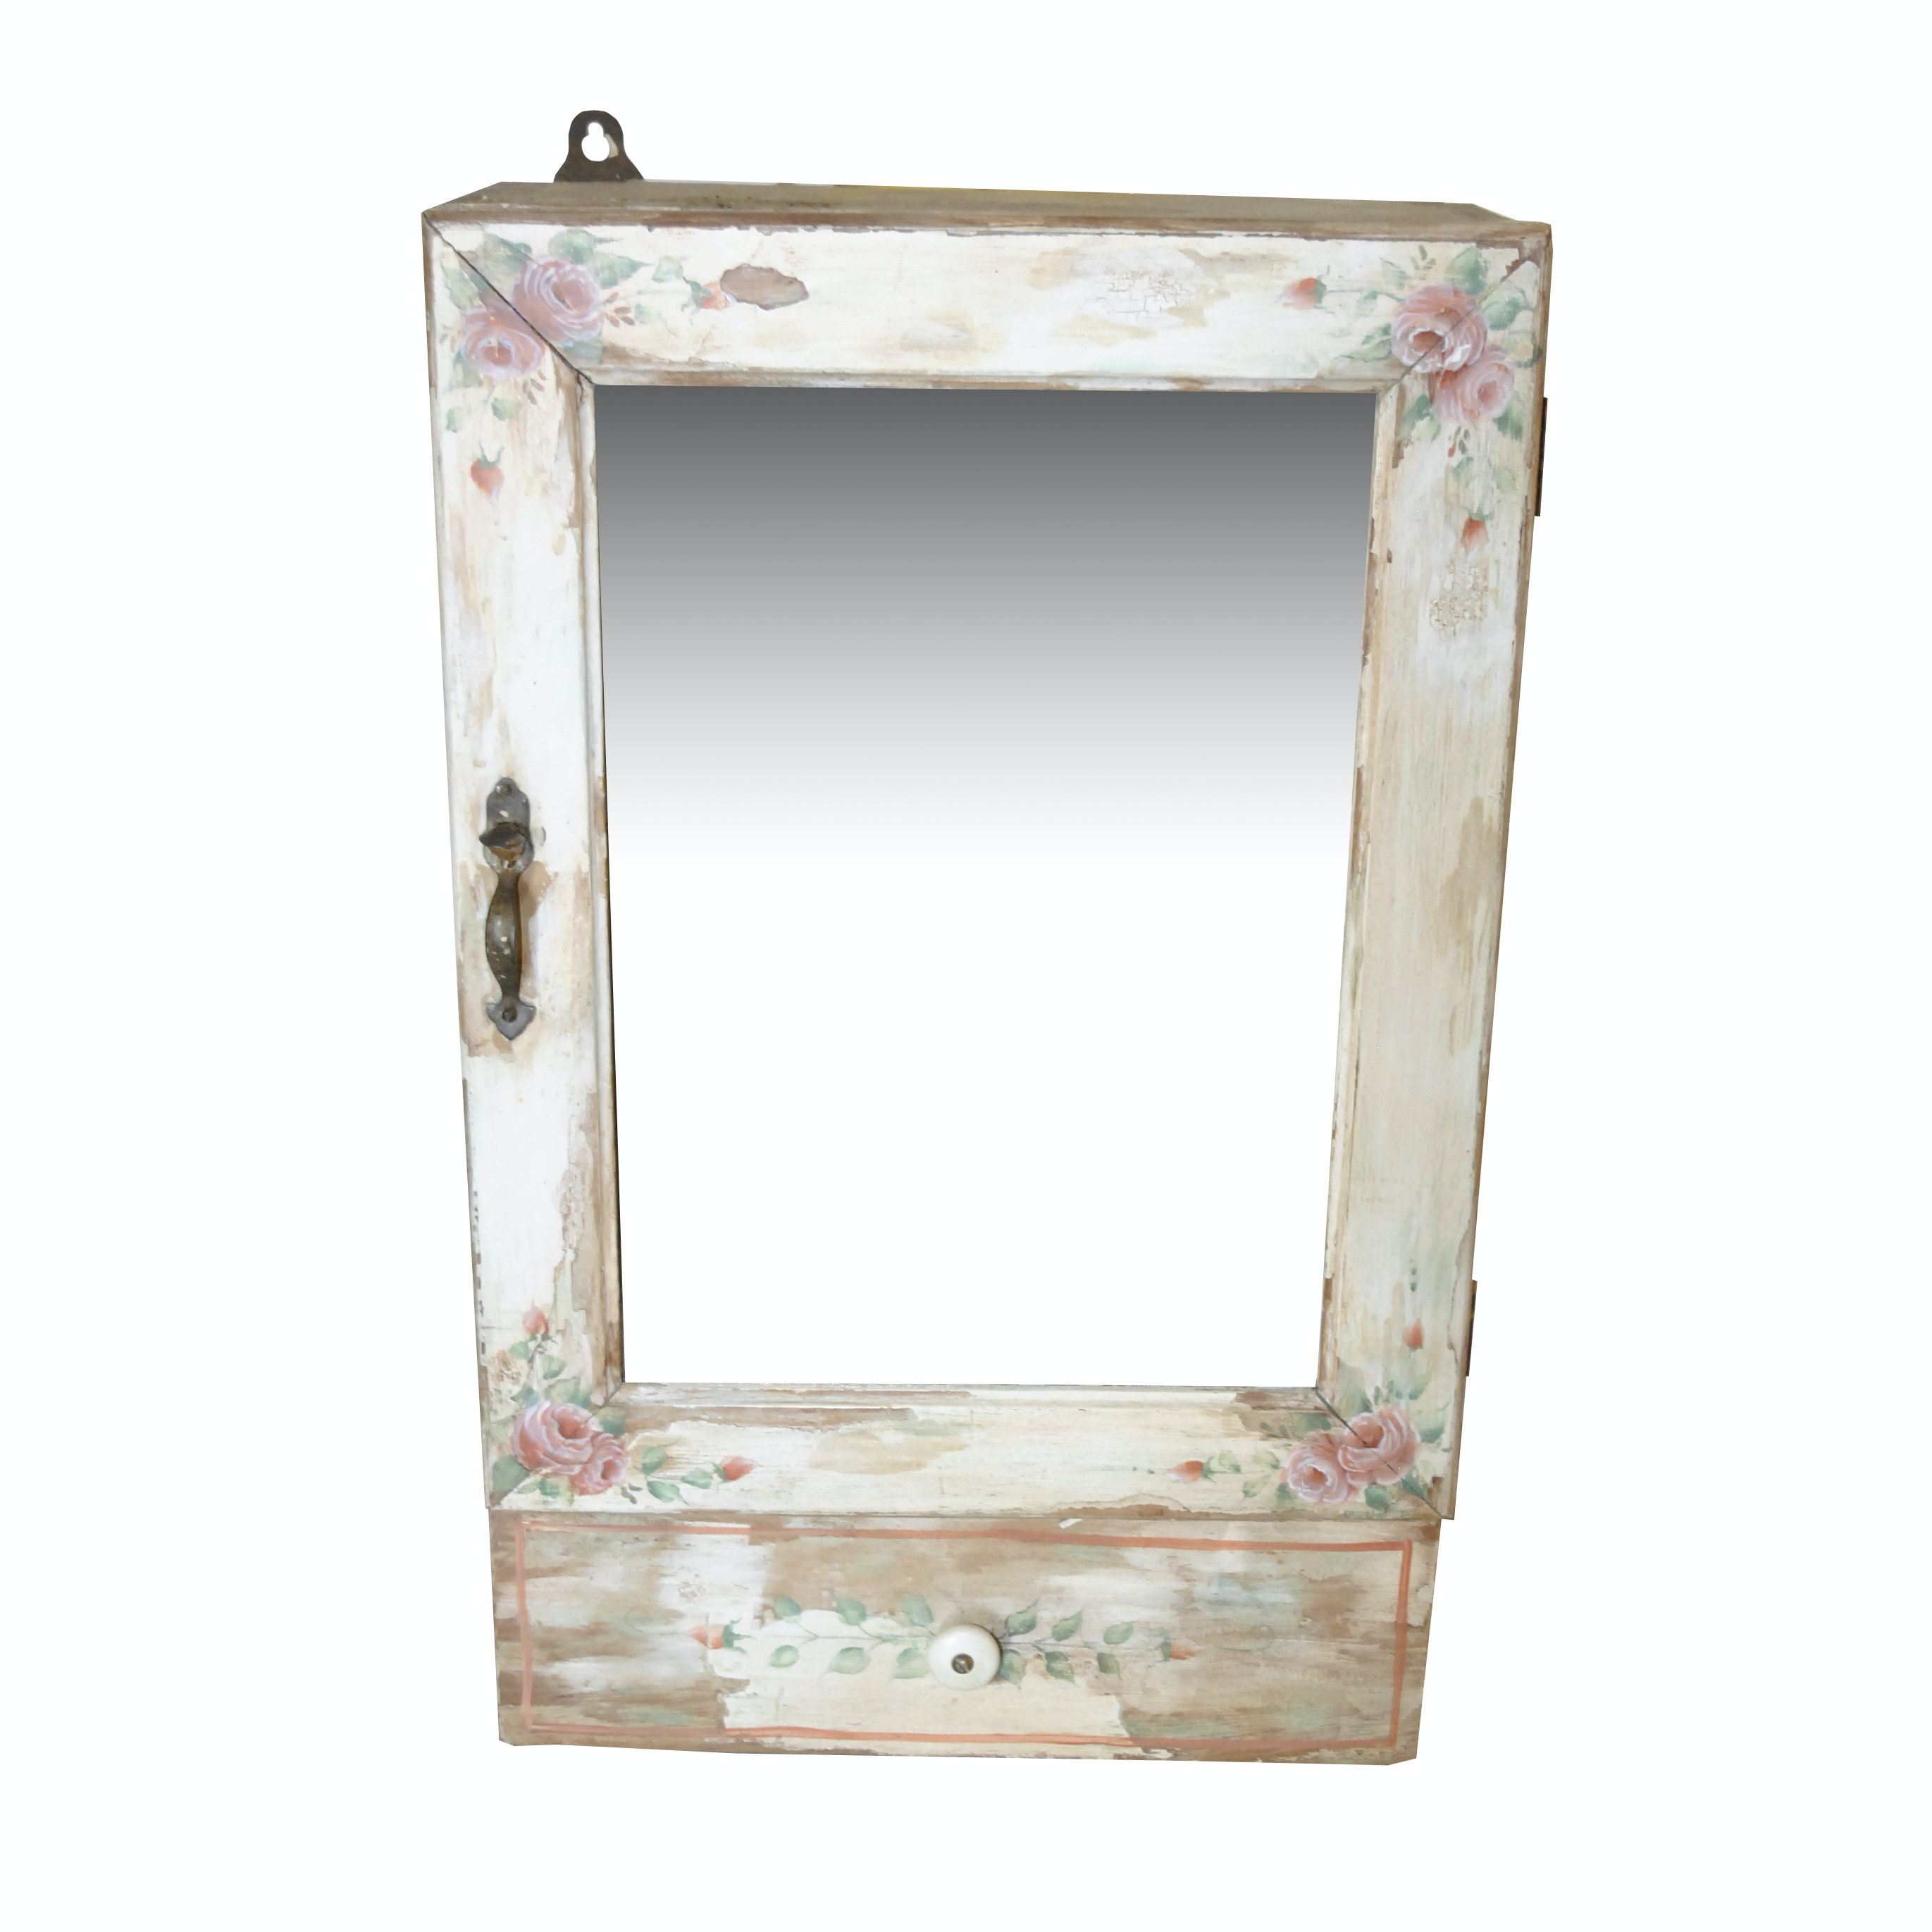 Mirrored Cabinet with Painted Floral Motif